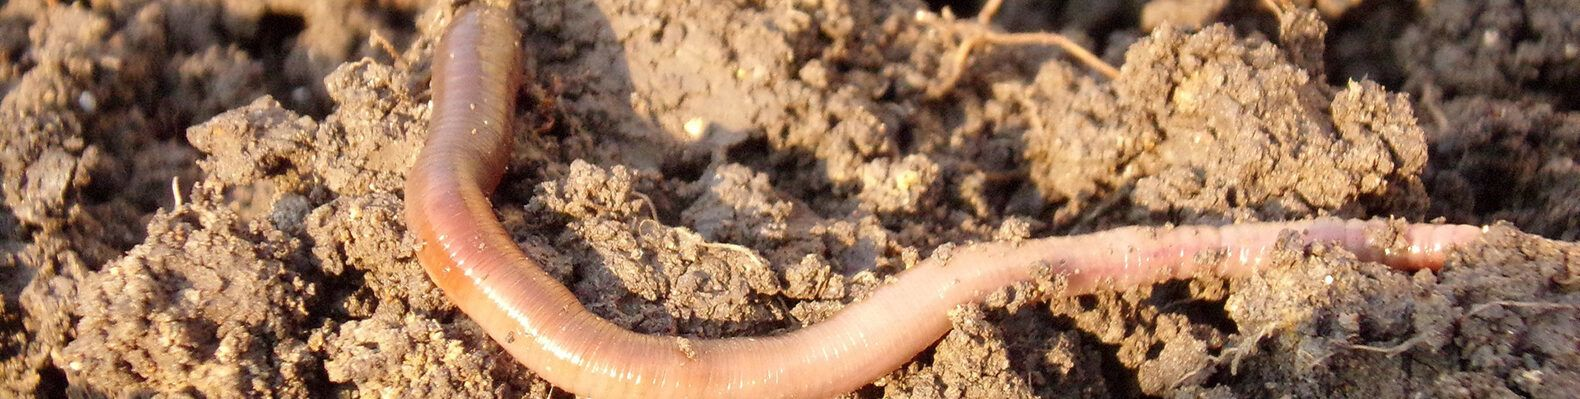 earthworm in dry soil